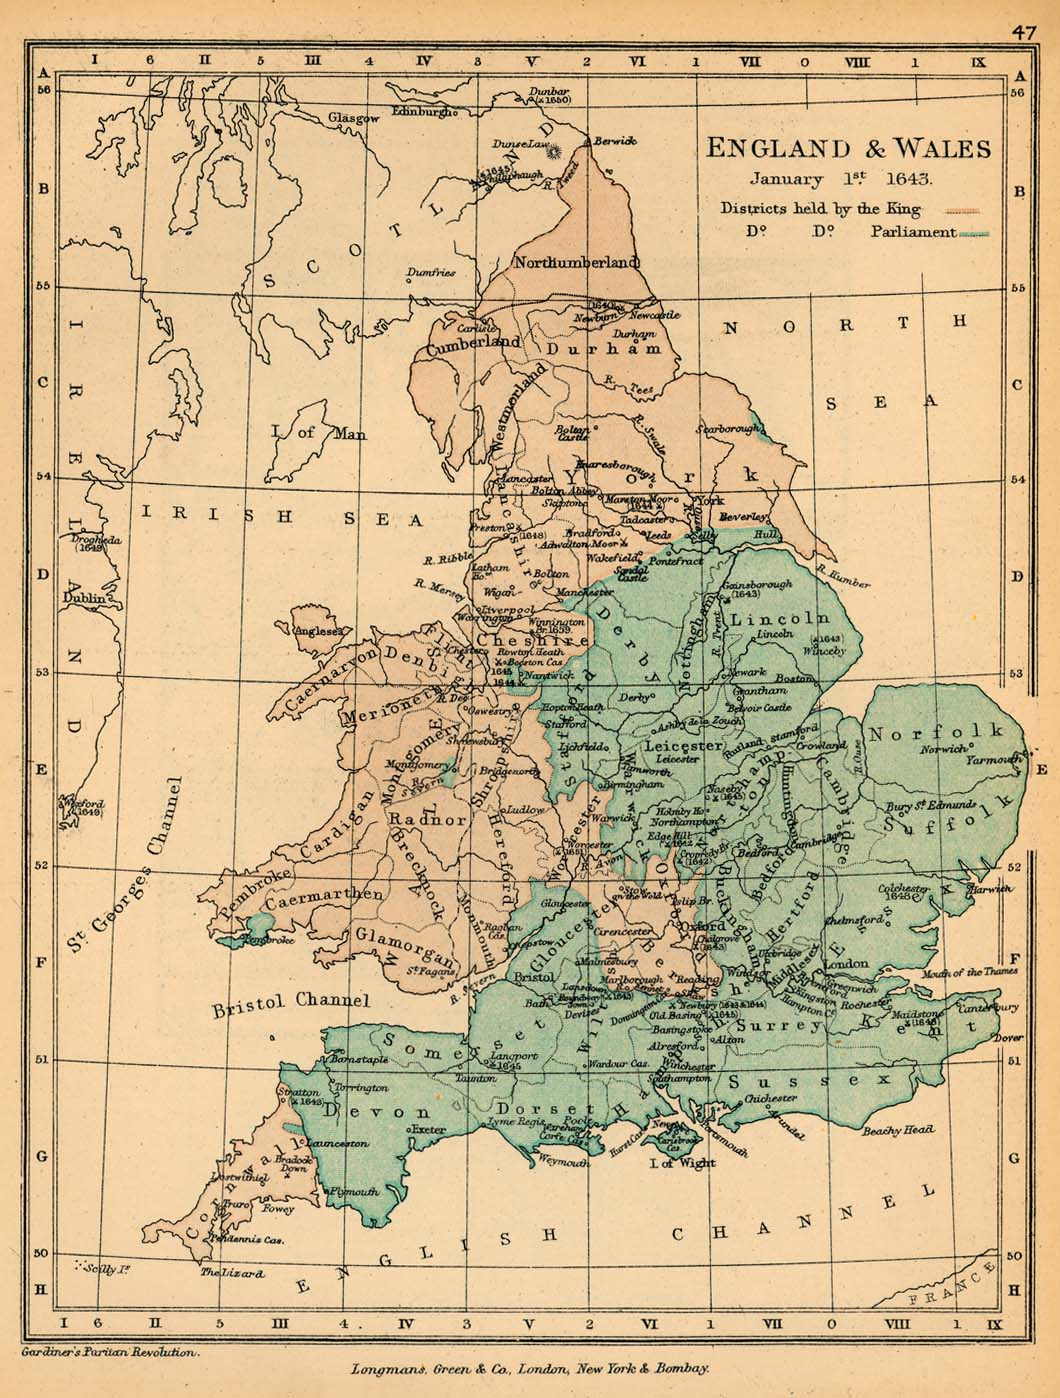 Map of England and Wales, January 1, 1643